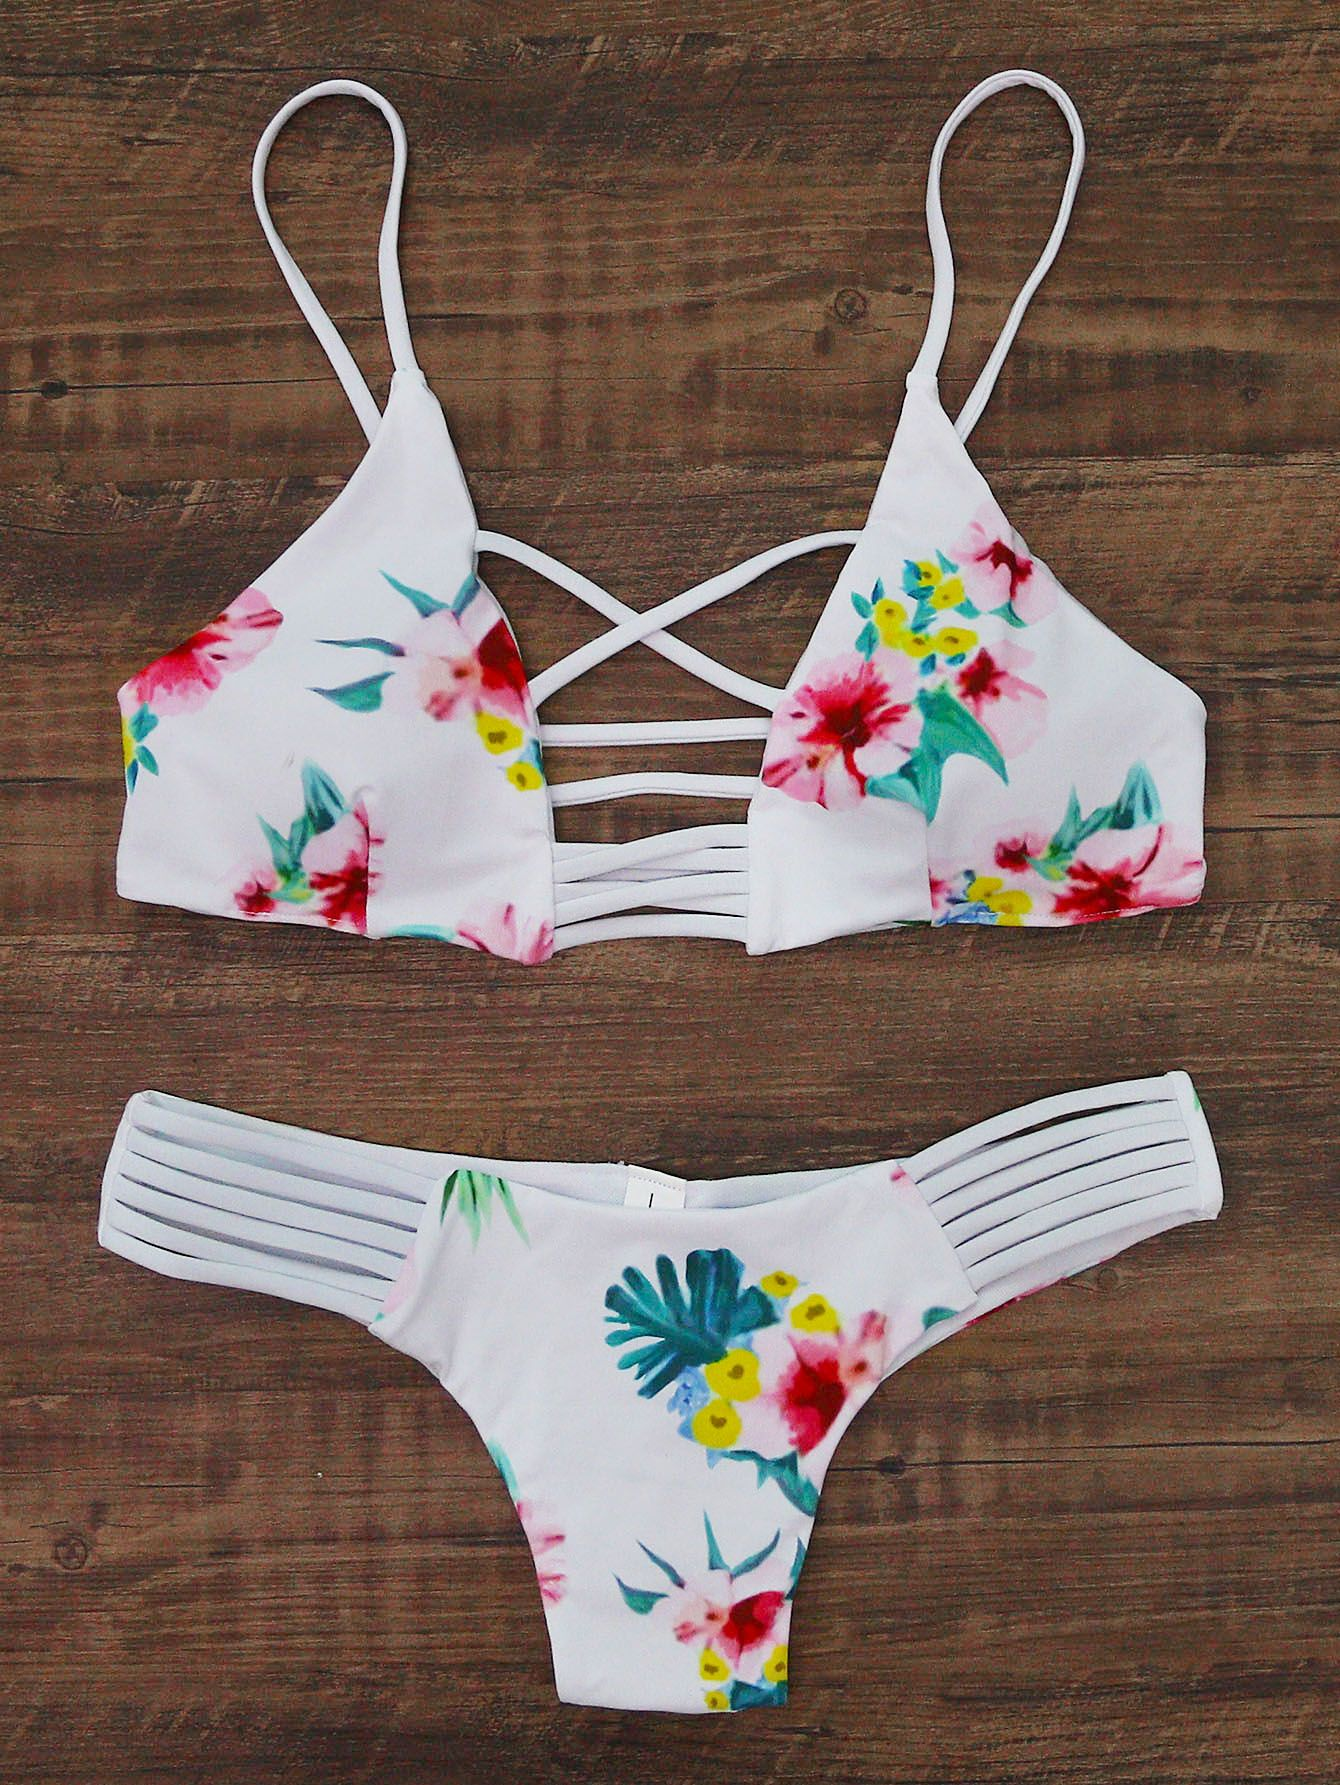 a13966dd89 Shop Floral Print Ladder Cutout Bikini Set online. SheIn offers Floral  Print Ladder Cutout Bikini Set & more to fit your fashionable needs.